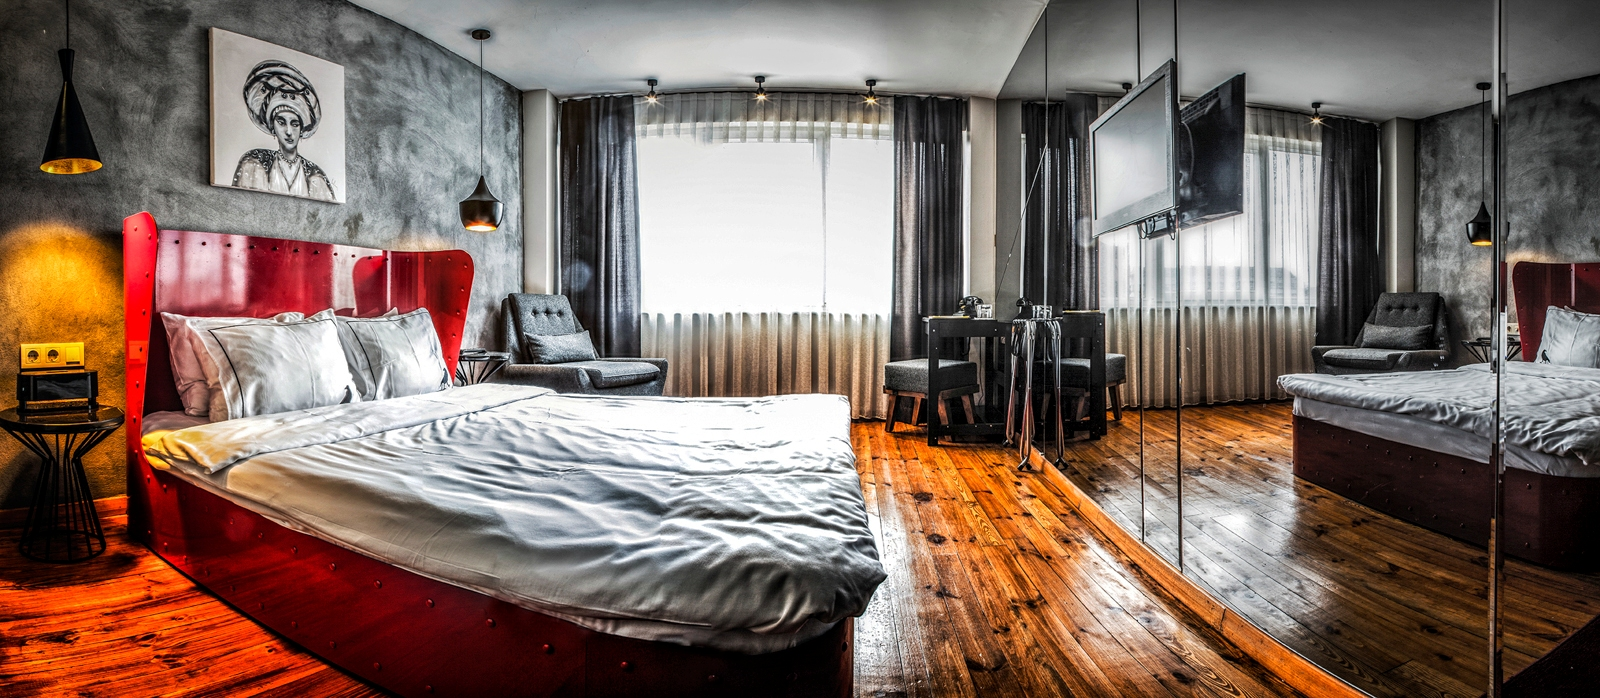 Design hotels in istanbul style n 39 critics for Decor hotel istanbul